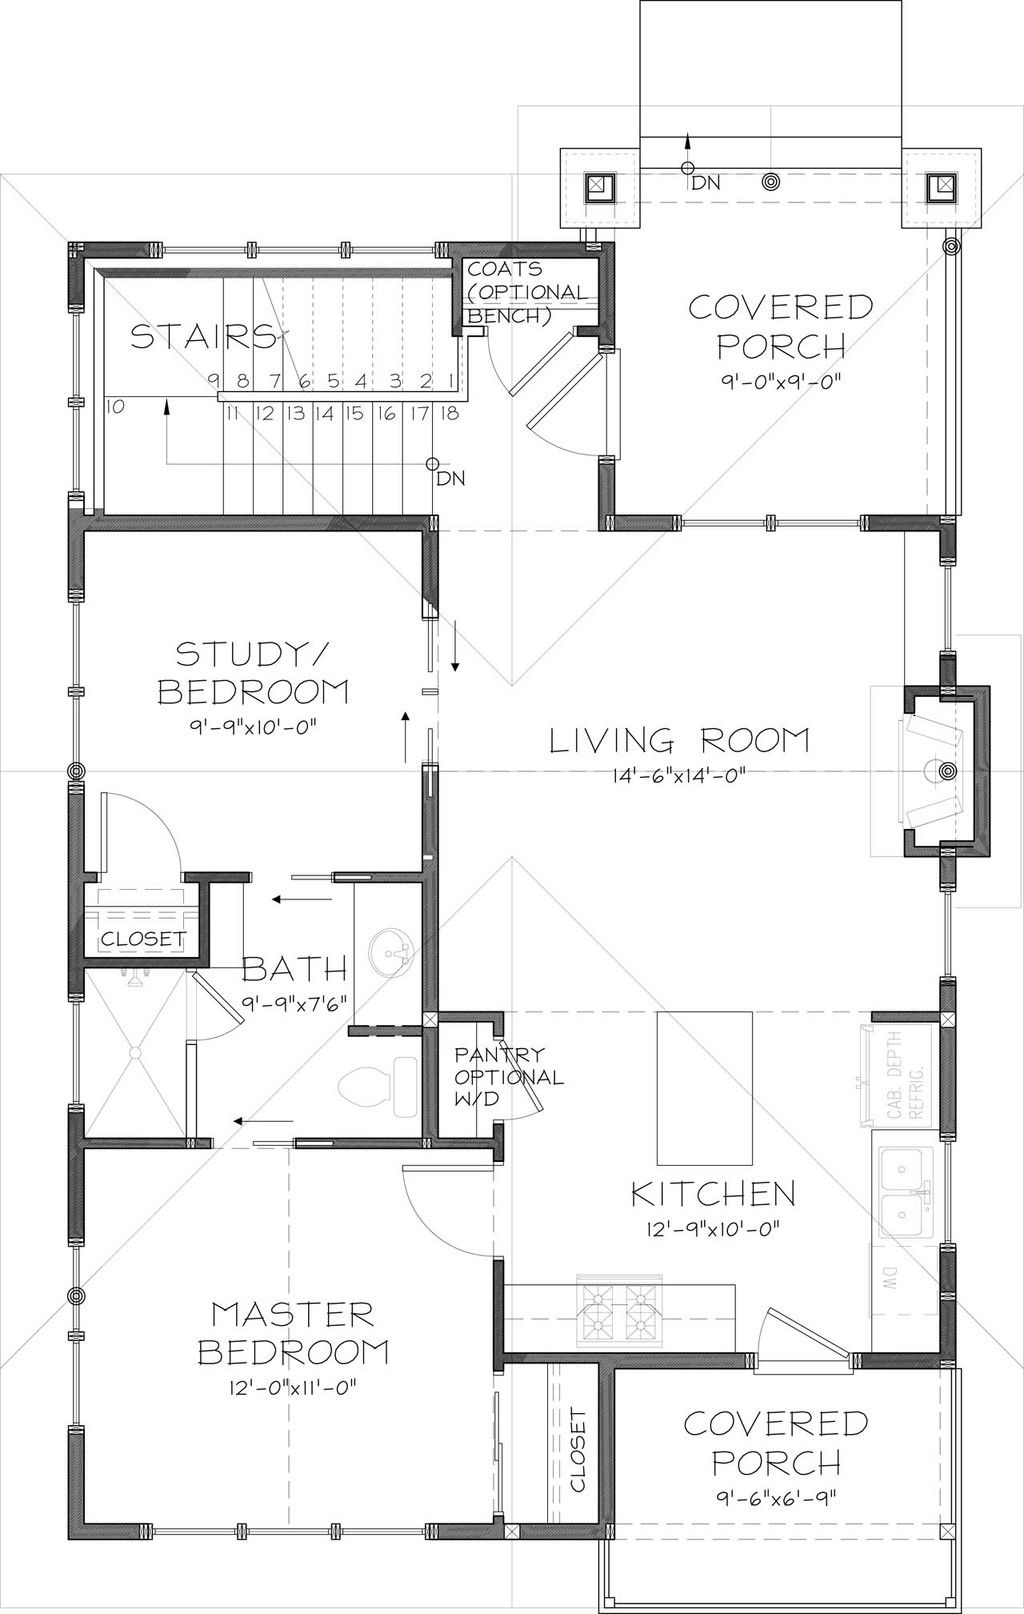 Craftsman Style House Plan 2 Beds 2 Baths 999 Sq Ft Plan 895 25 Craftsman Style House Plans House Plans New House Plans